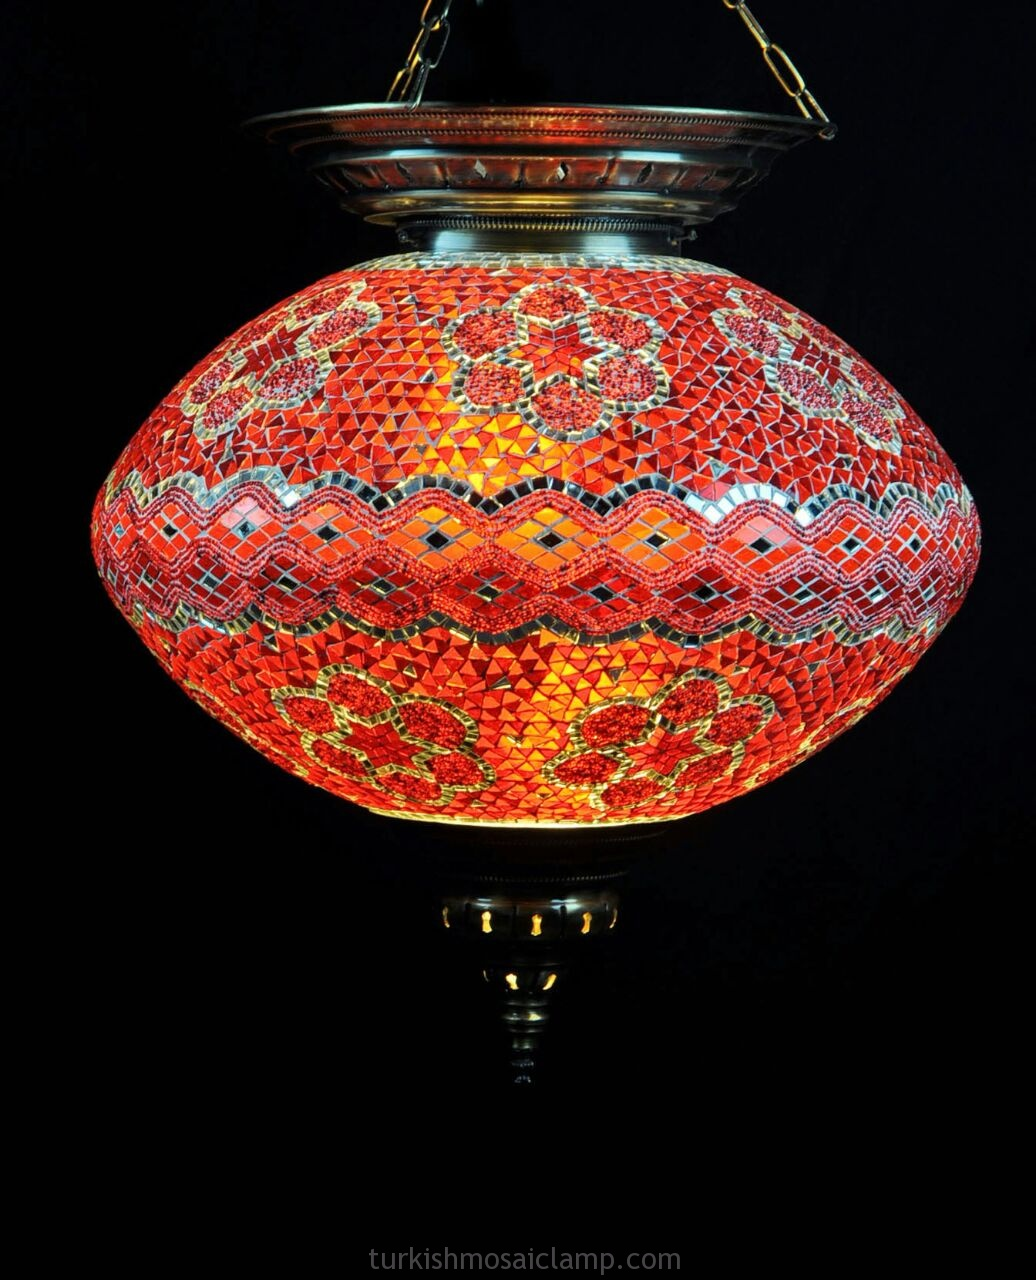 Hobby Lobby Hanging Candle Lanterns for Homeware | Mosaic ... on Candle Globes Hobby Lobby id=15763